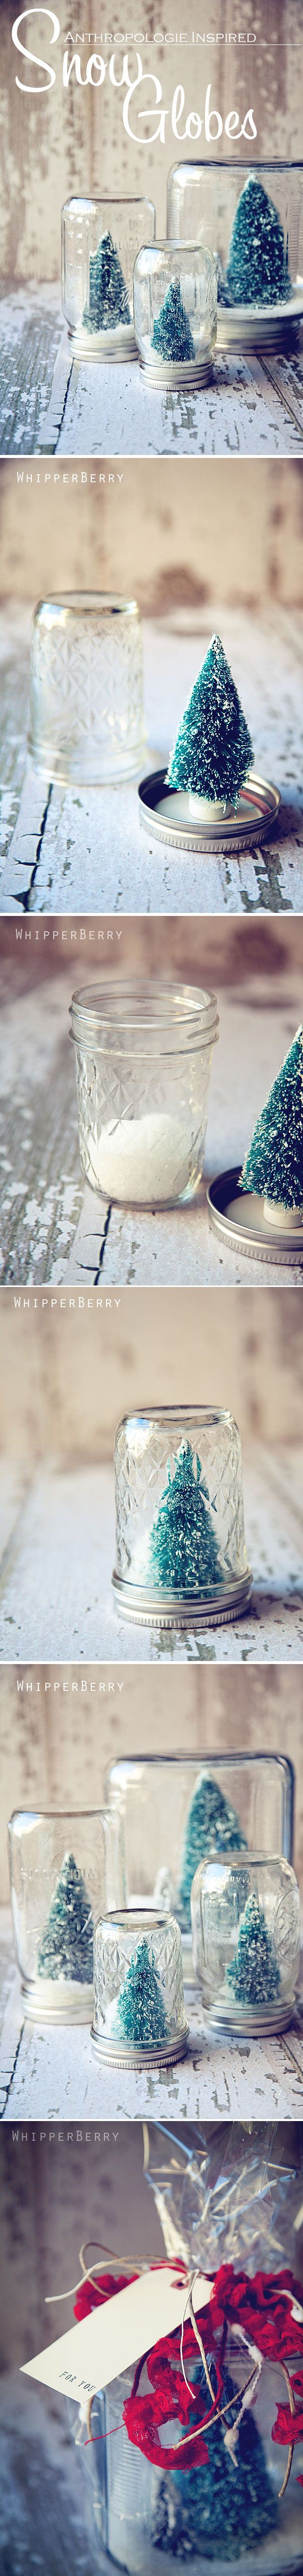 diy-christmas-decorations-021